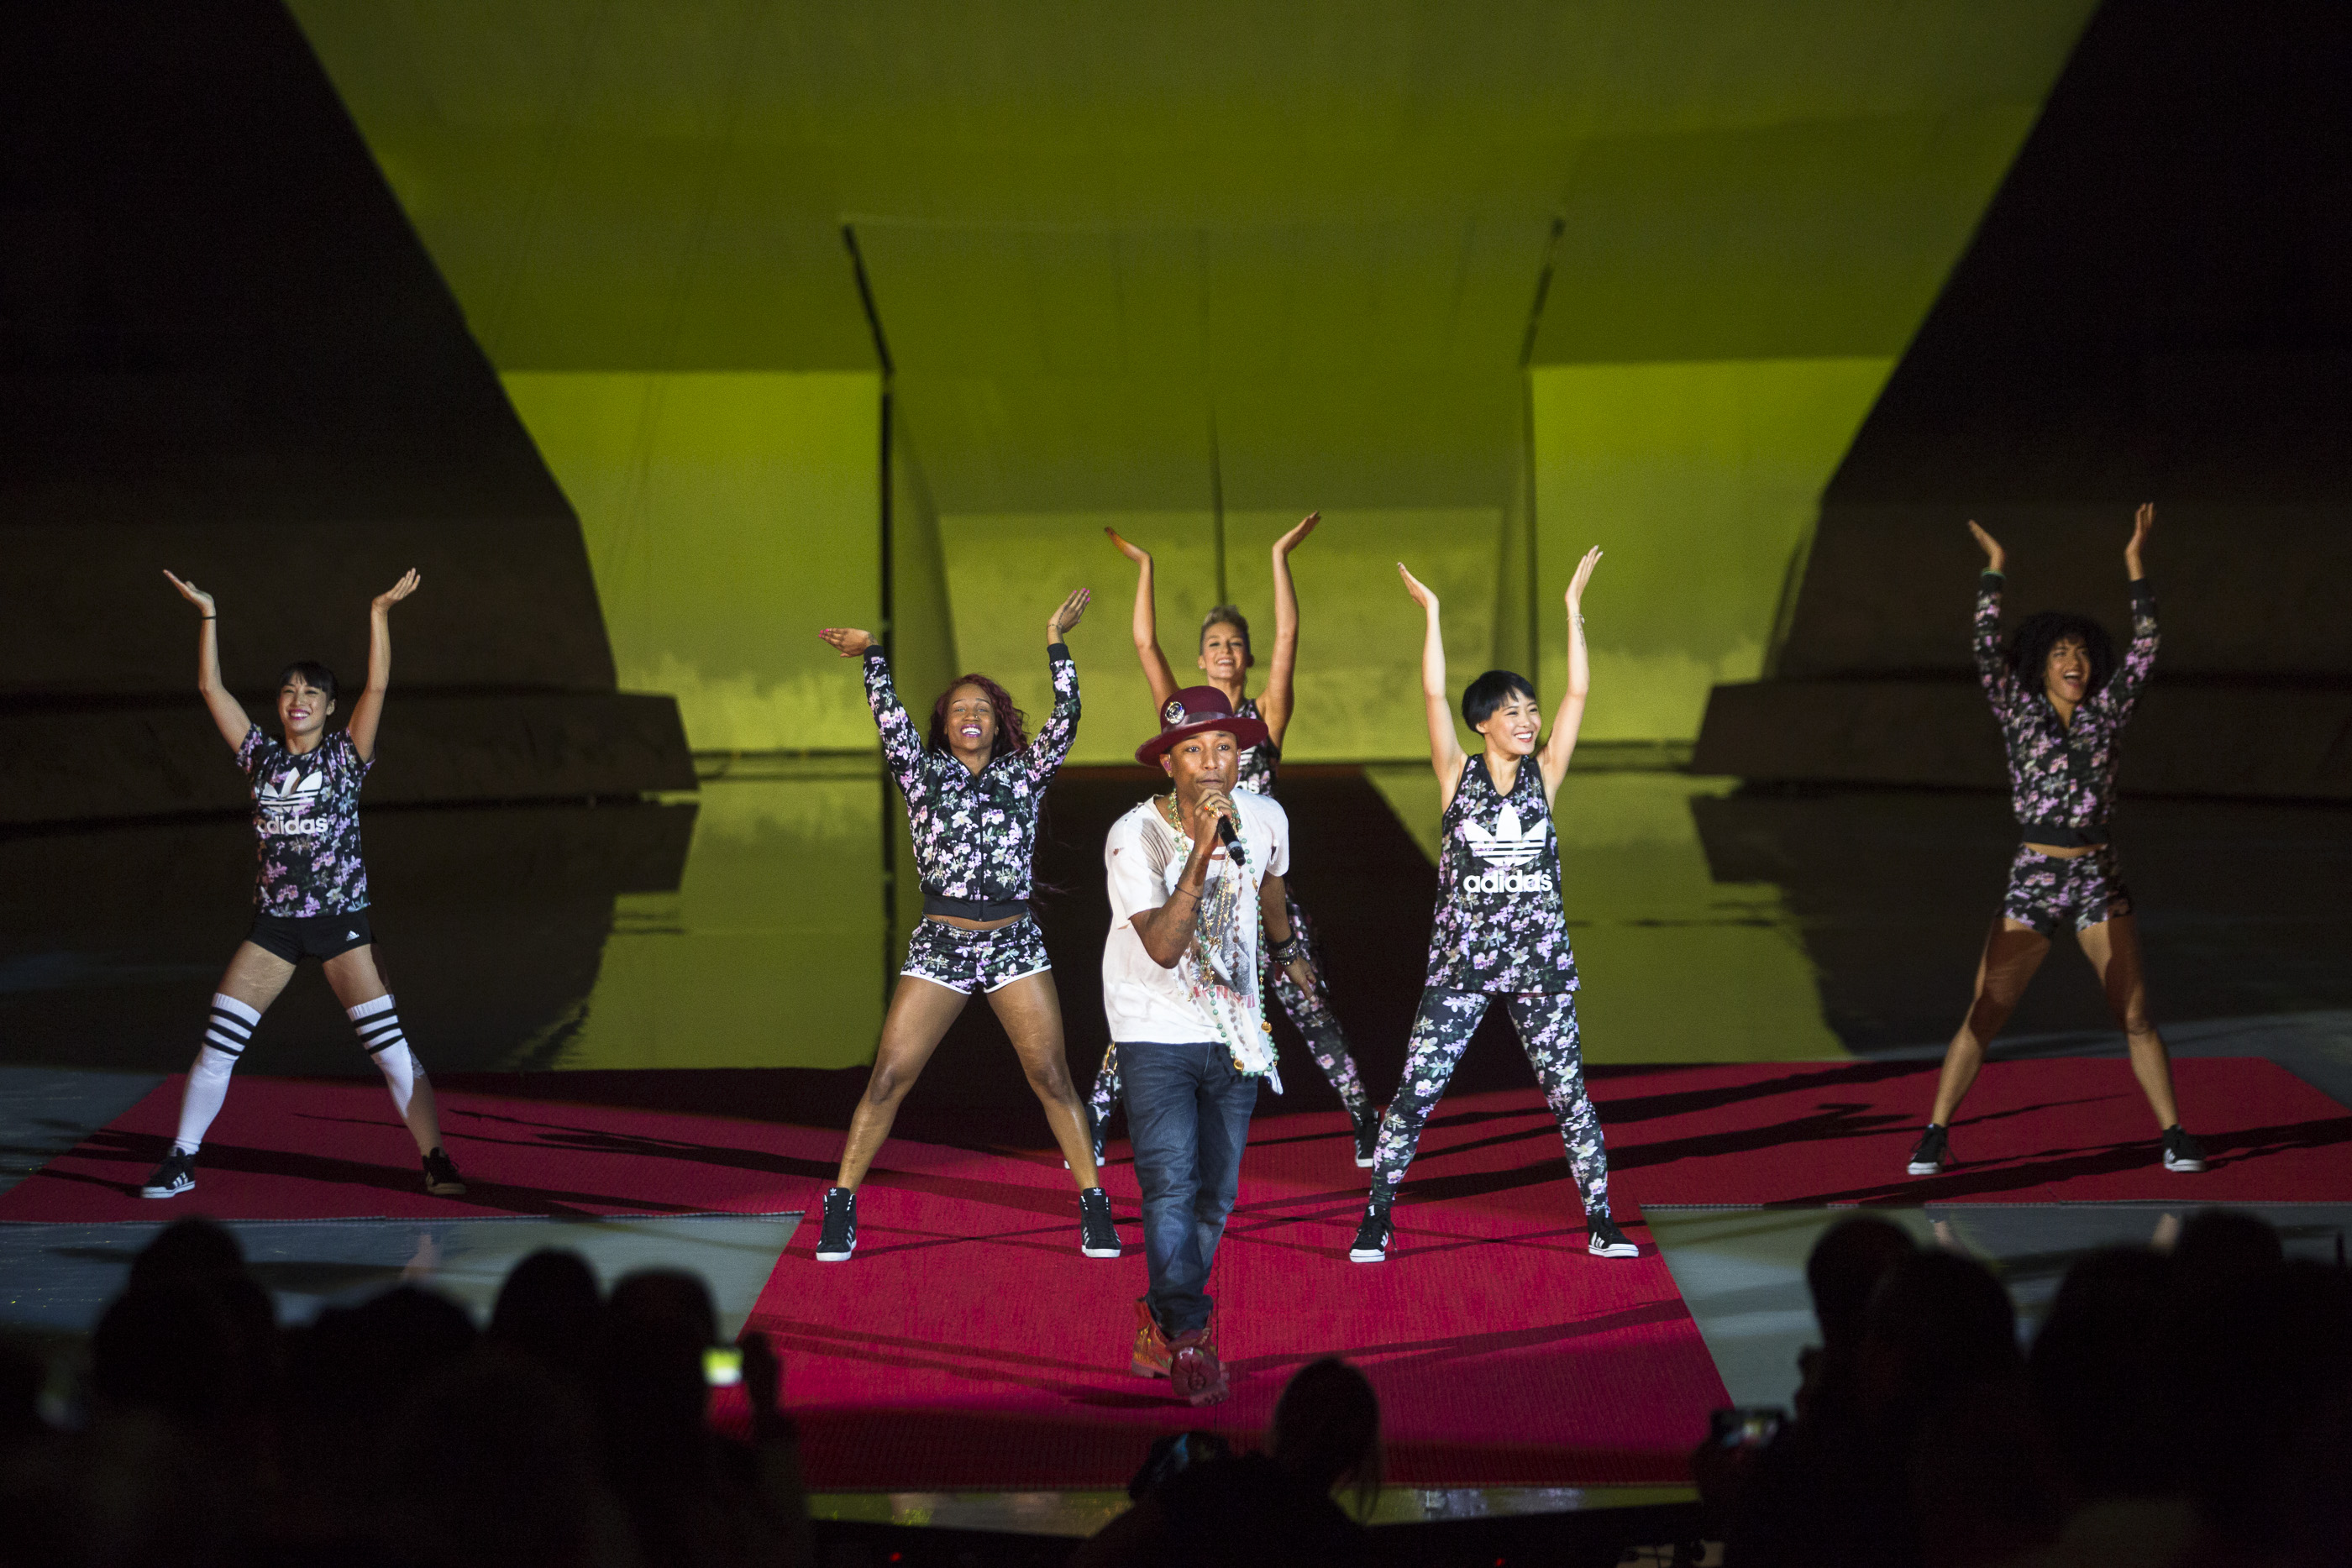 INTIMISSIMI-ARENA-DI-VERONA-20-SEPTEMBER-2014-Pharell-Williams